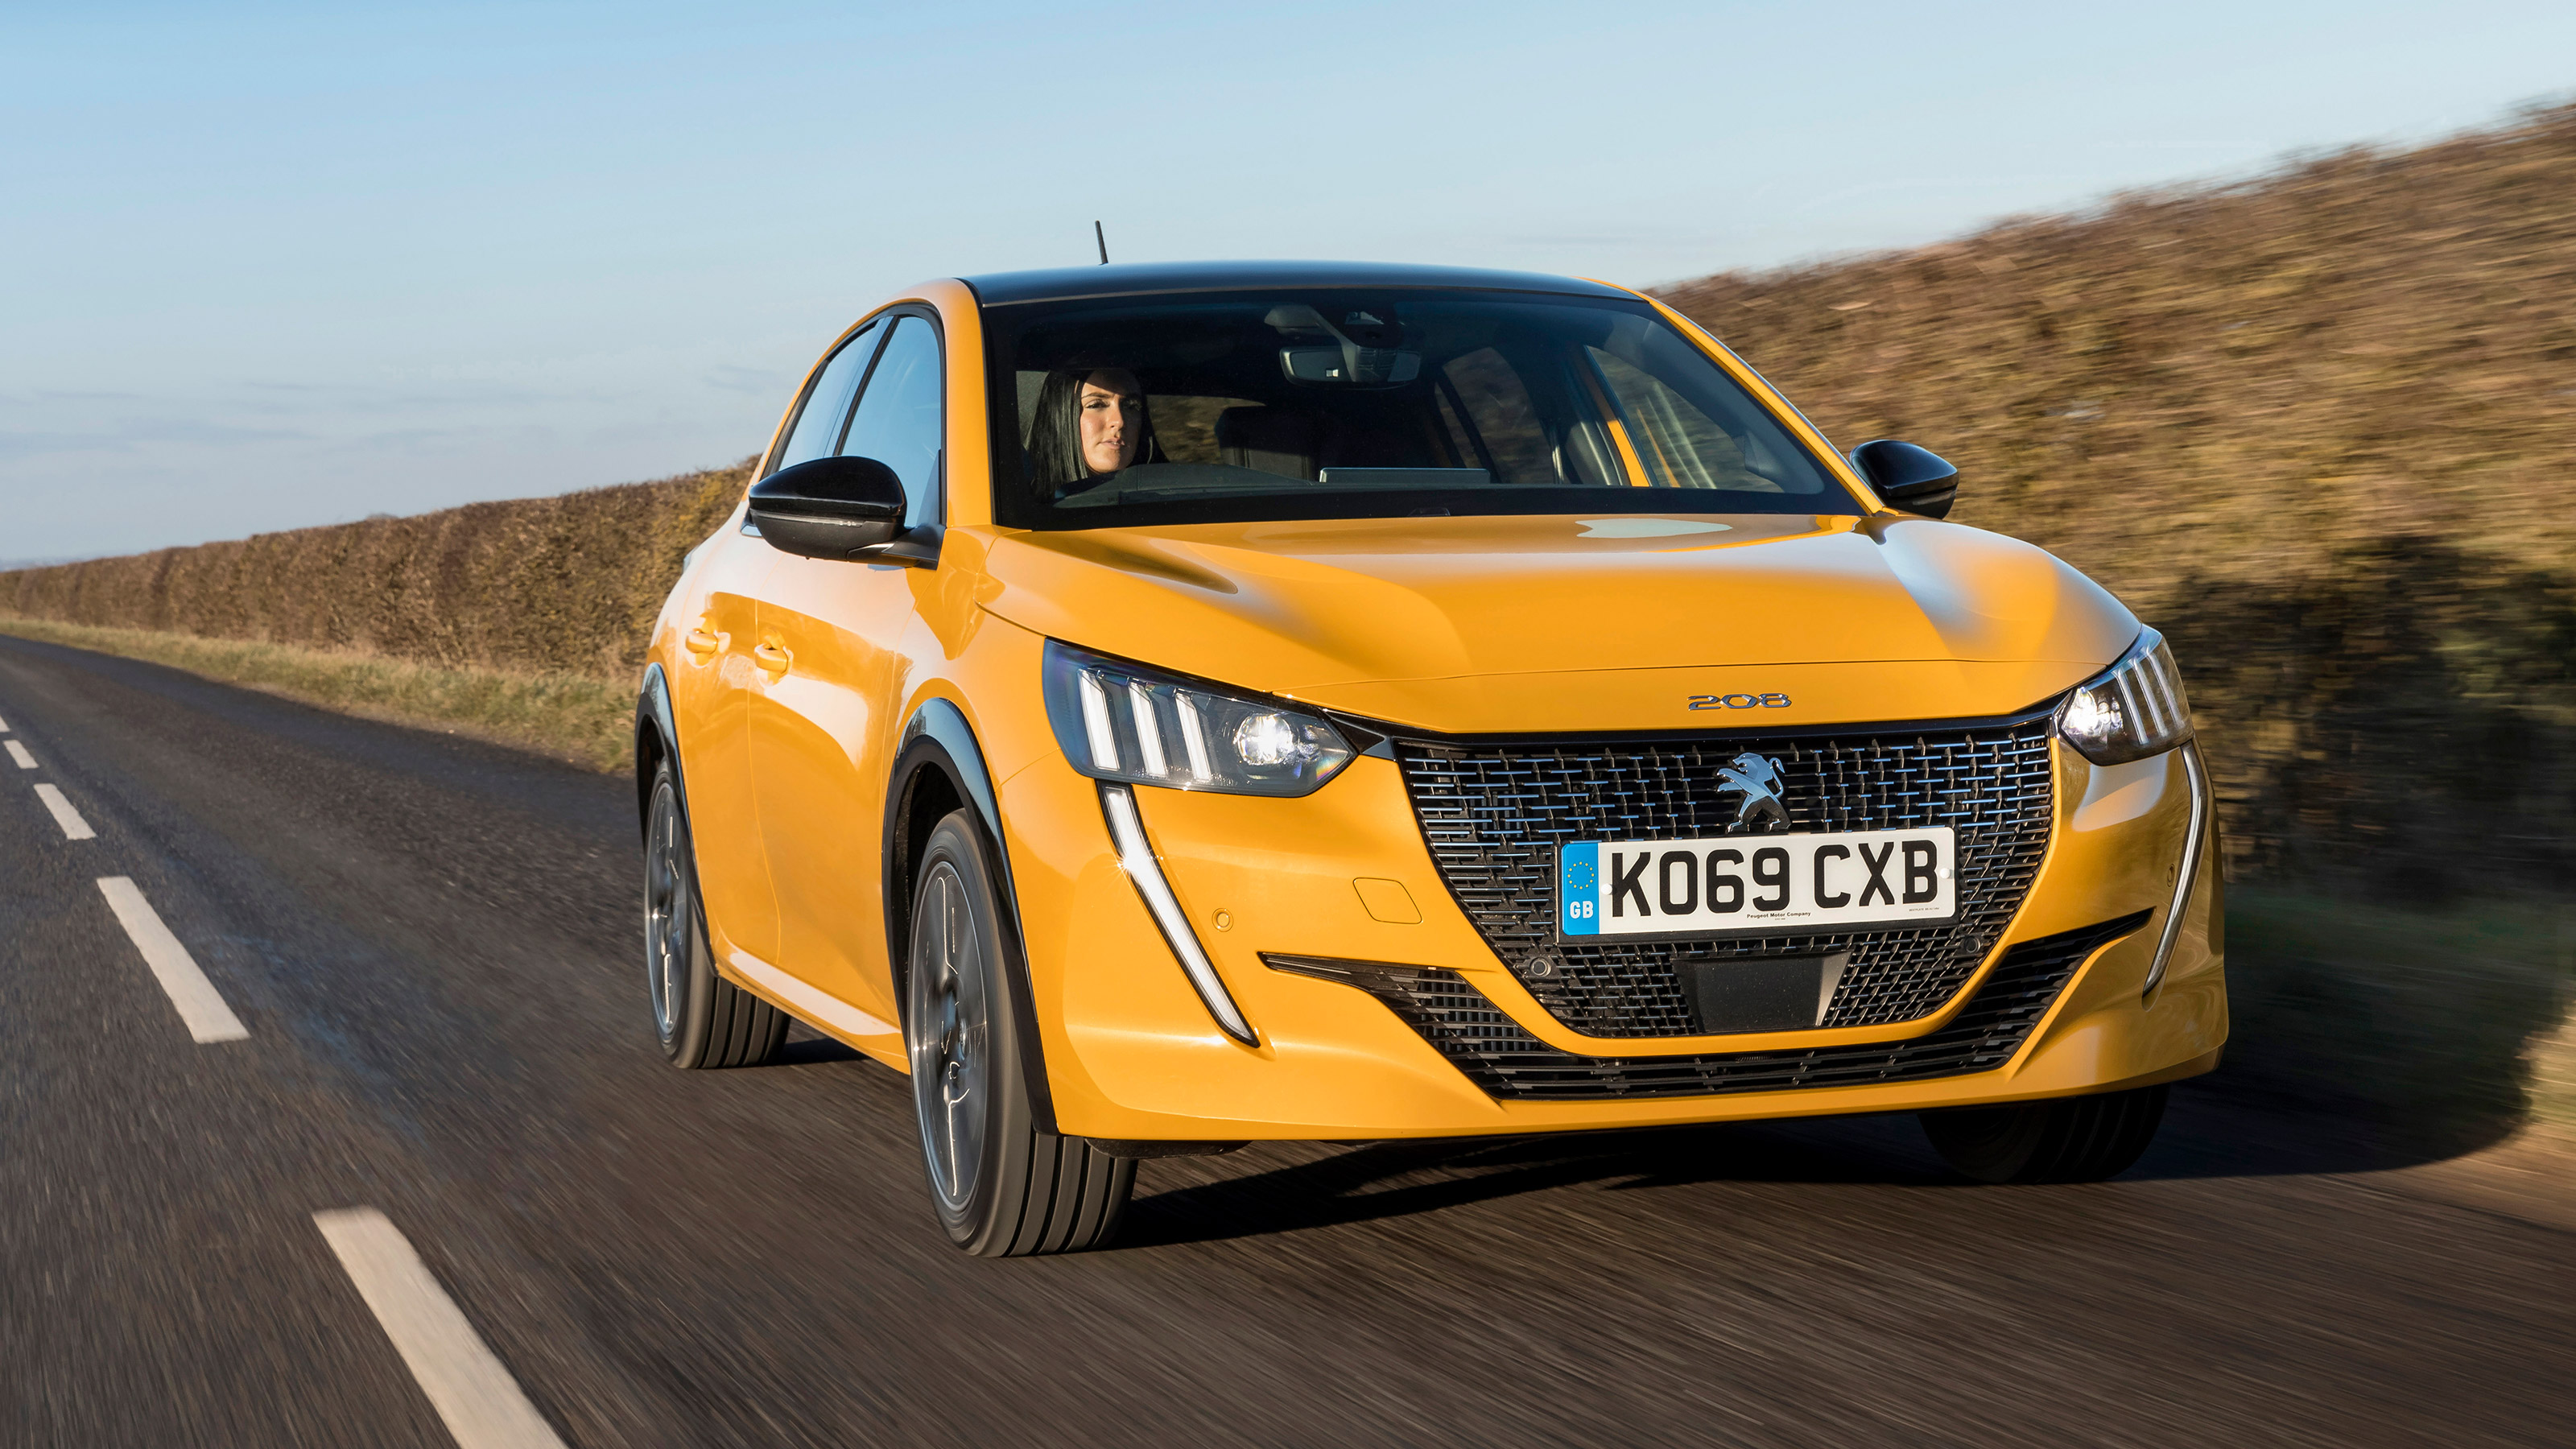 Peugeot 208 Gt Line 2020 Review New Generation Supermini Moves The Game Forward Evo